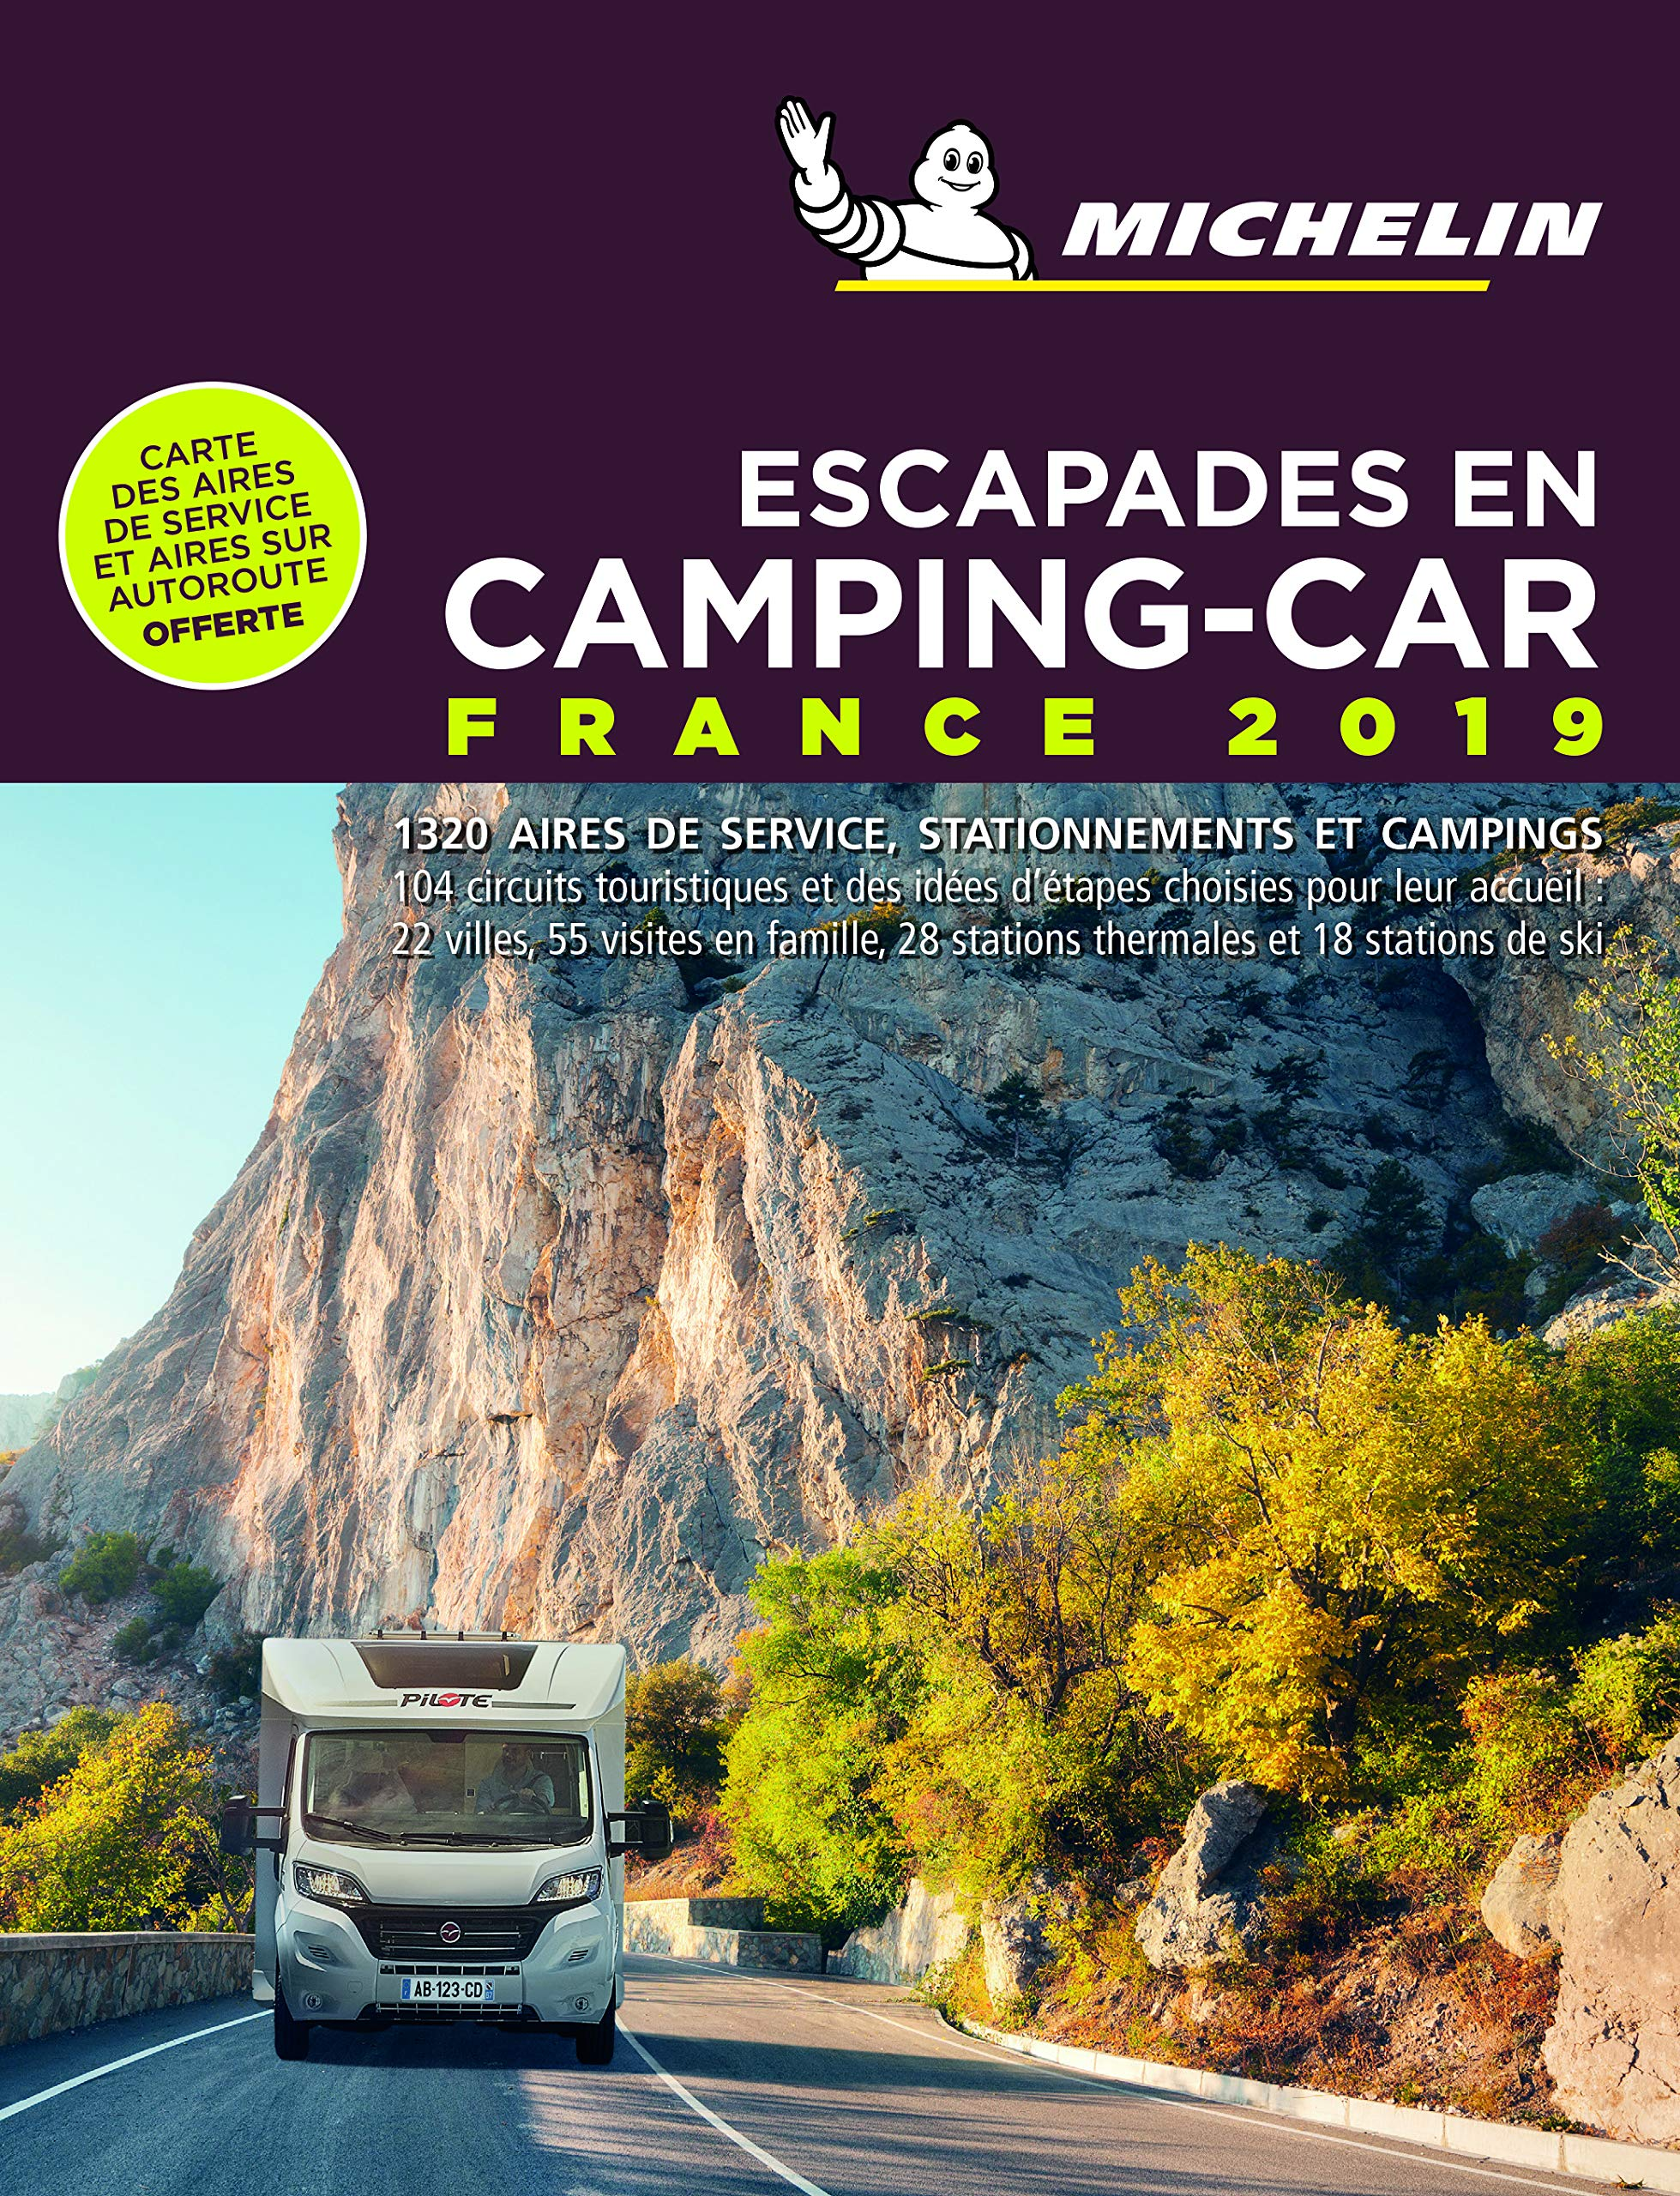 Escapades en Camping-car France 2019 Guías Temáticas: Amazon.es: Michelin: Libros en idiomas extranjeros